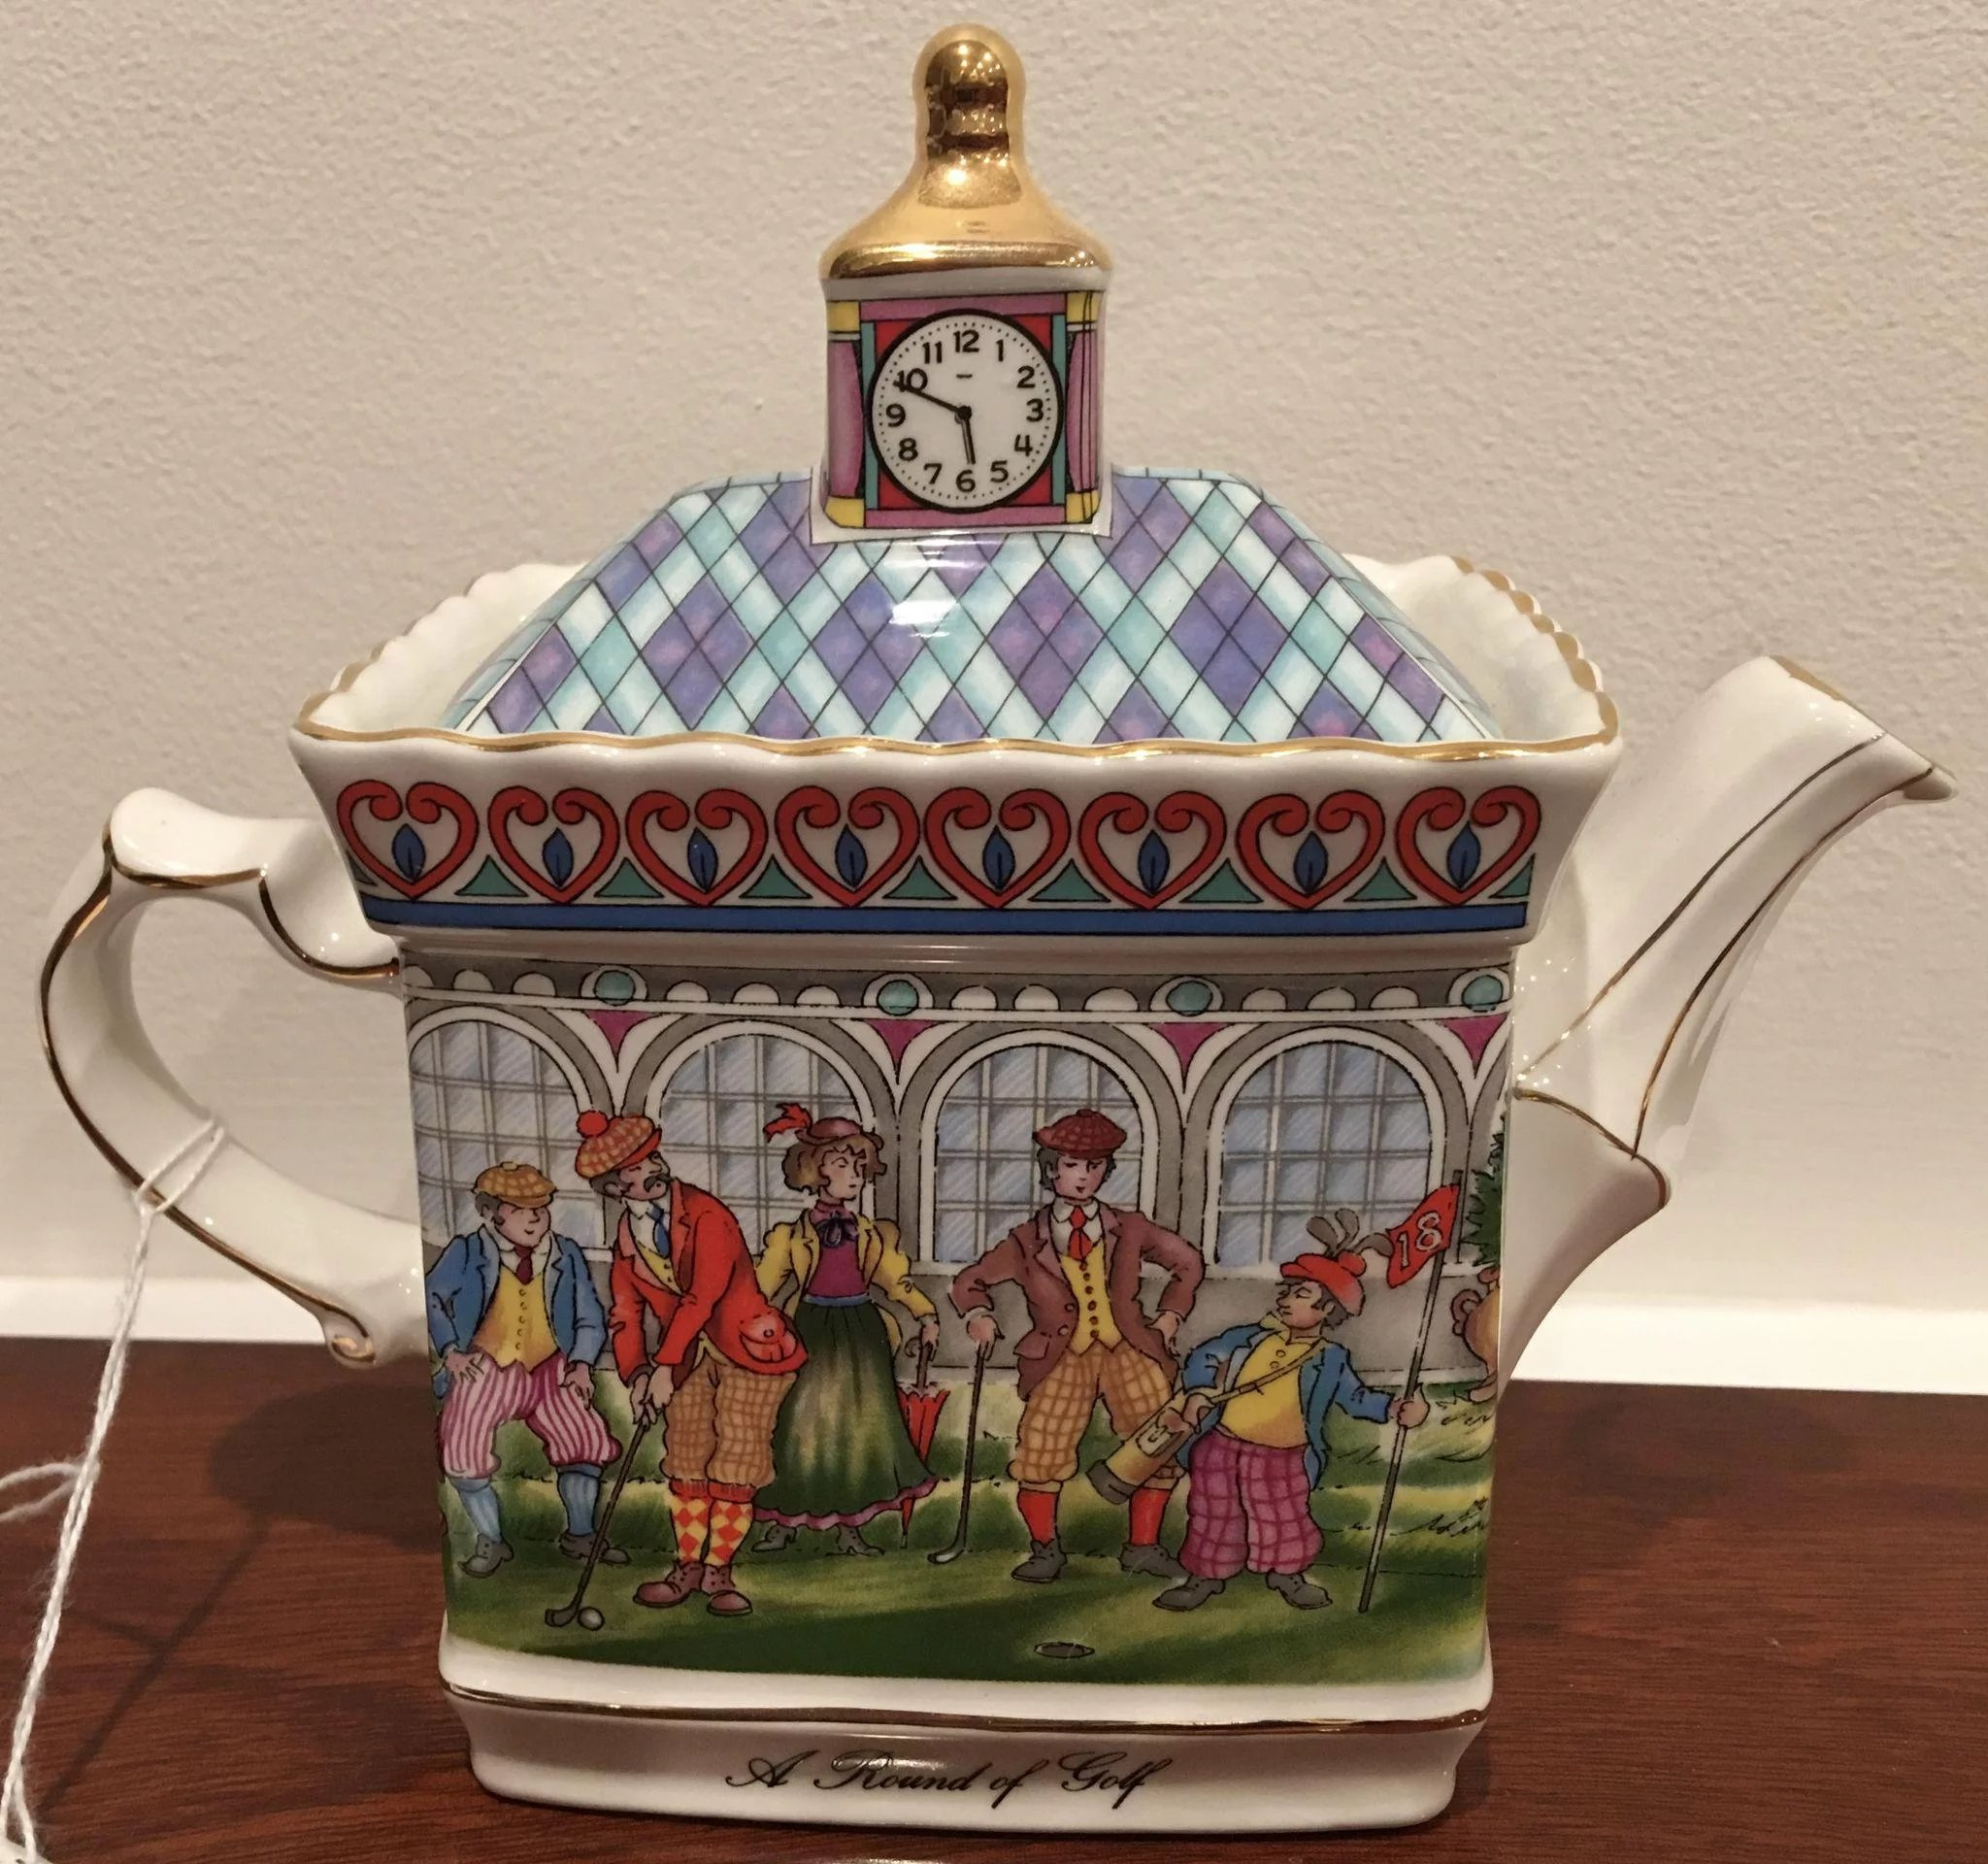 Sadler S Classic Collection Teapot A Round Of Golf Made In England Antique Circa Ruby Lane